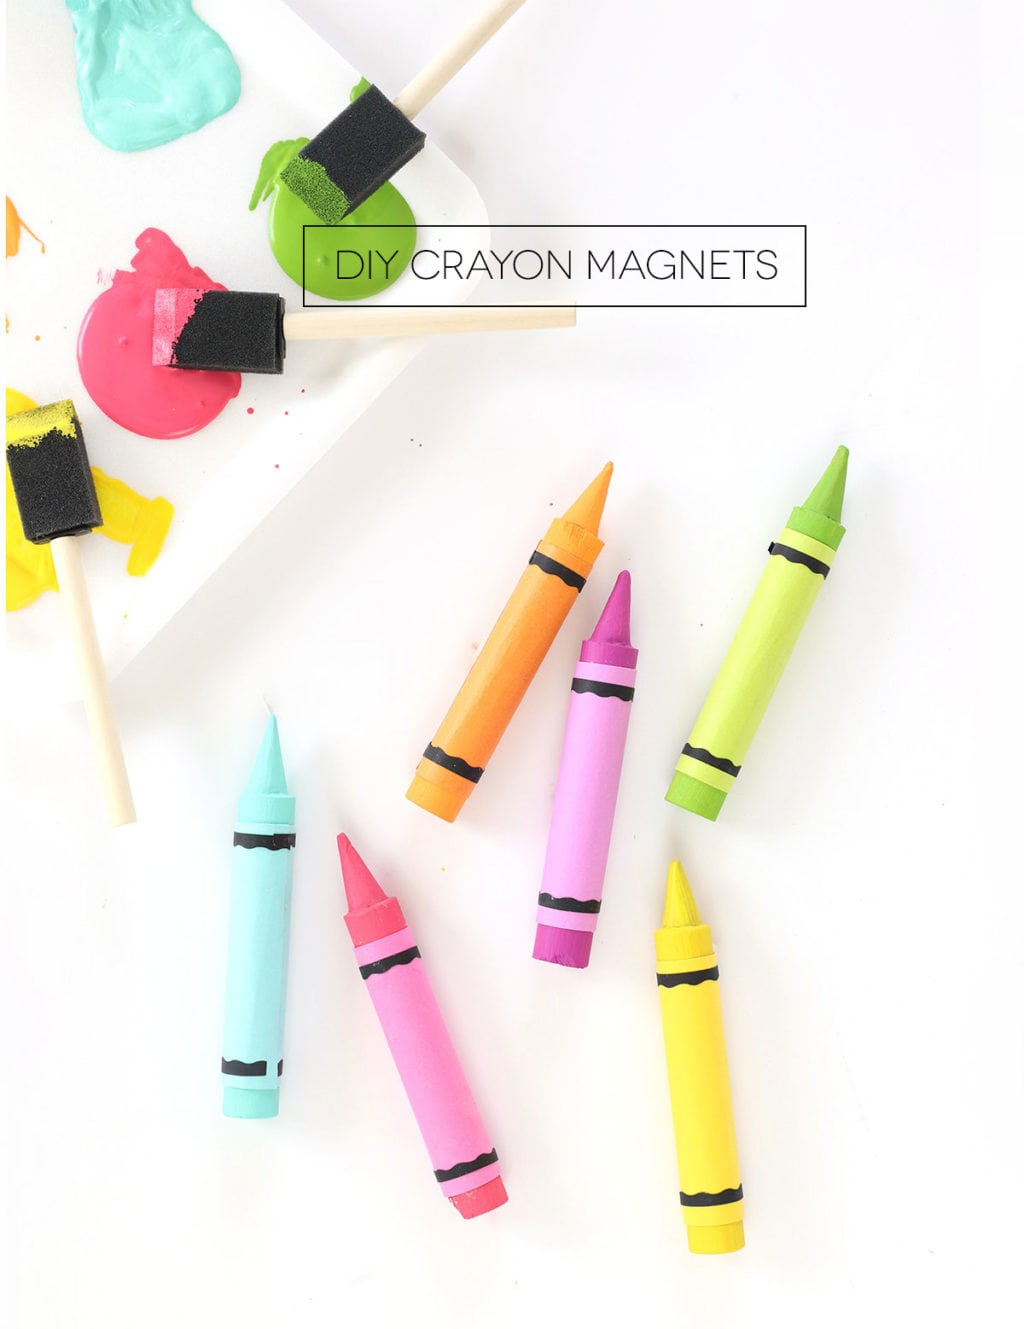 DIY colorful wooden crayon magnets for lockers